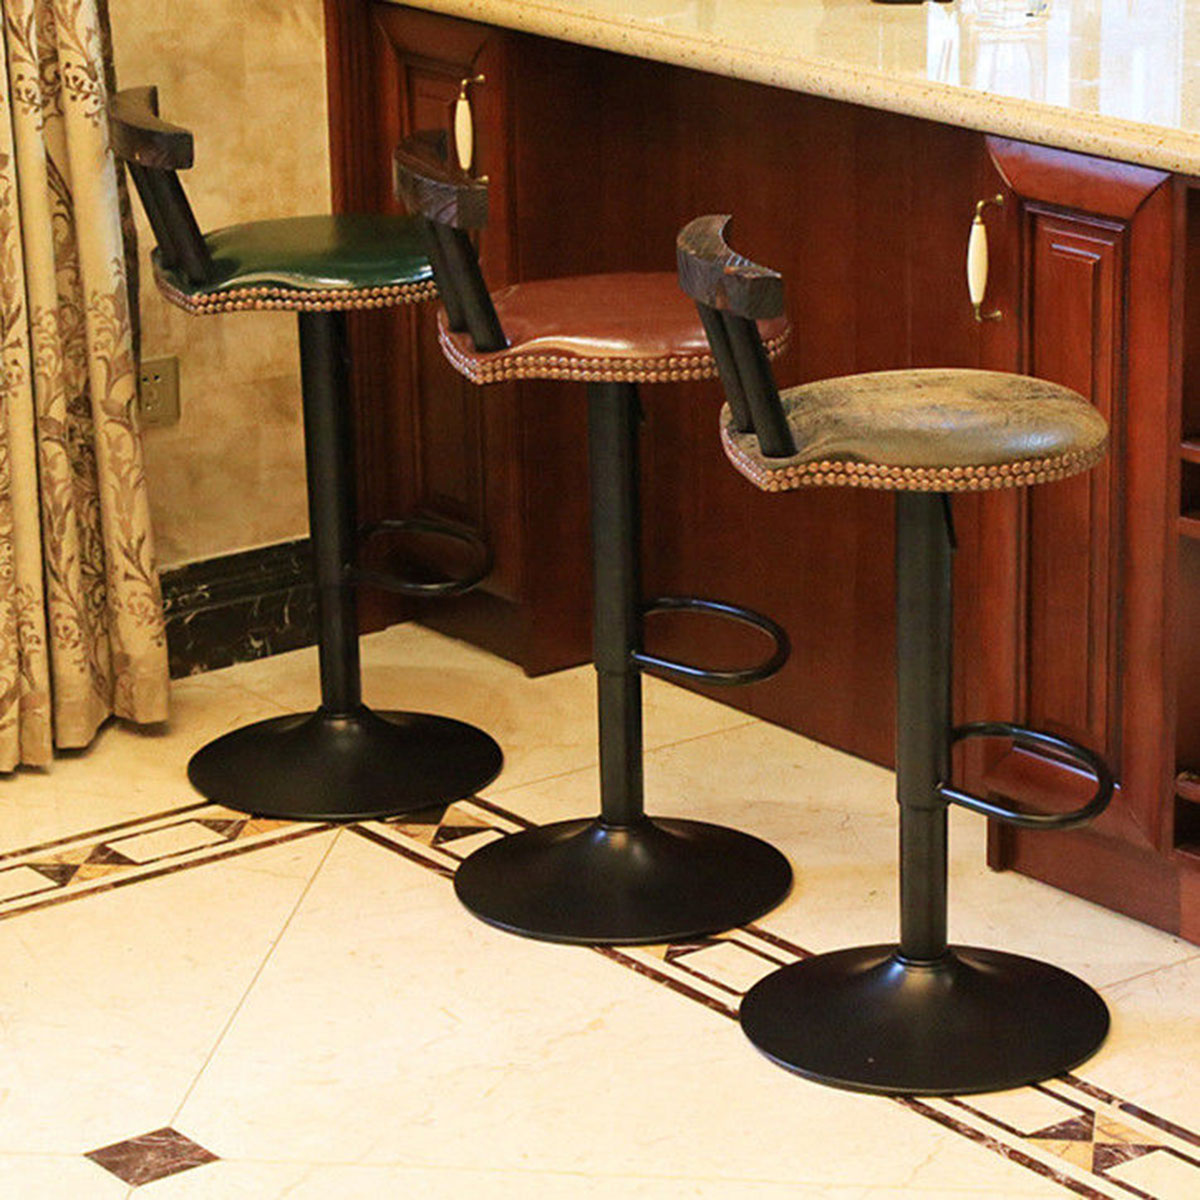 Wrought Iron Bar Chair Retro Lift Home High Stool Bar Continental Rotating With Backrest+ PU Leather Seat